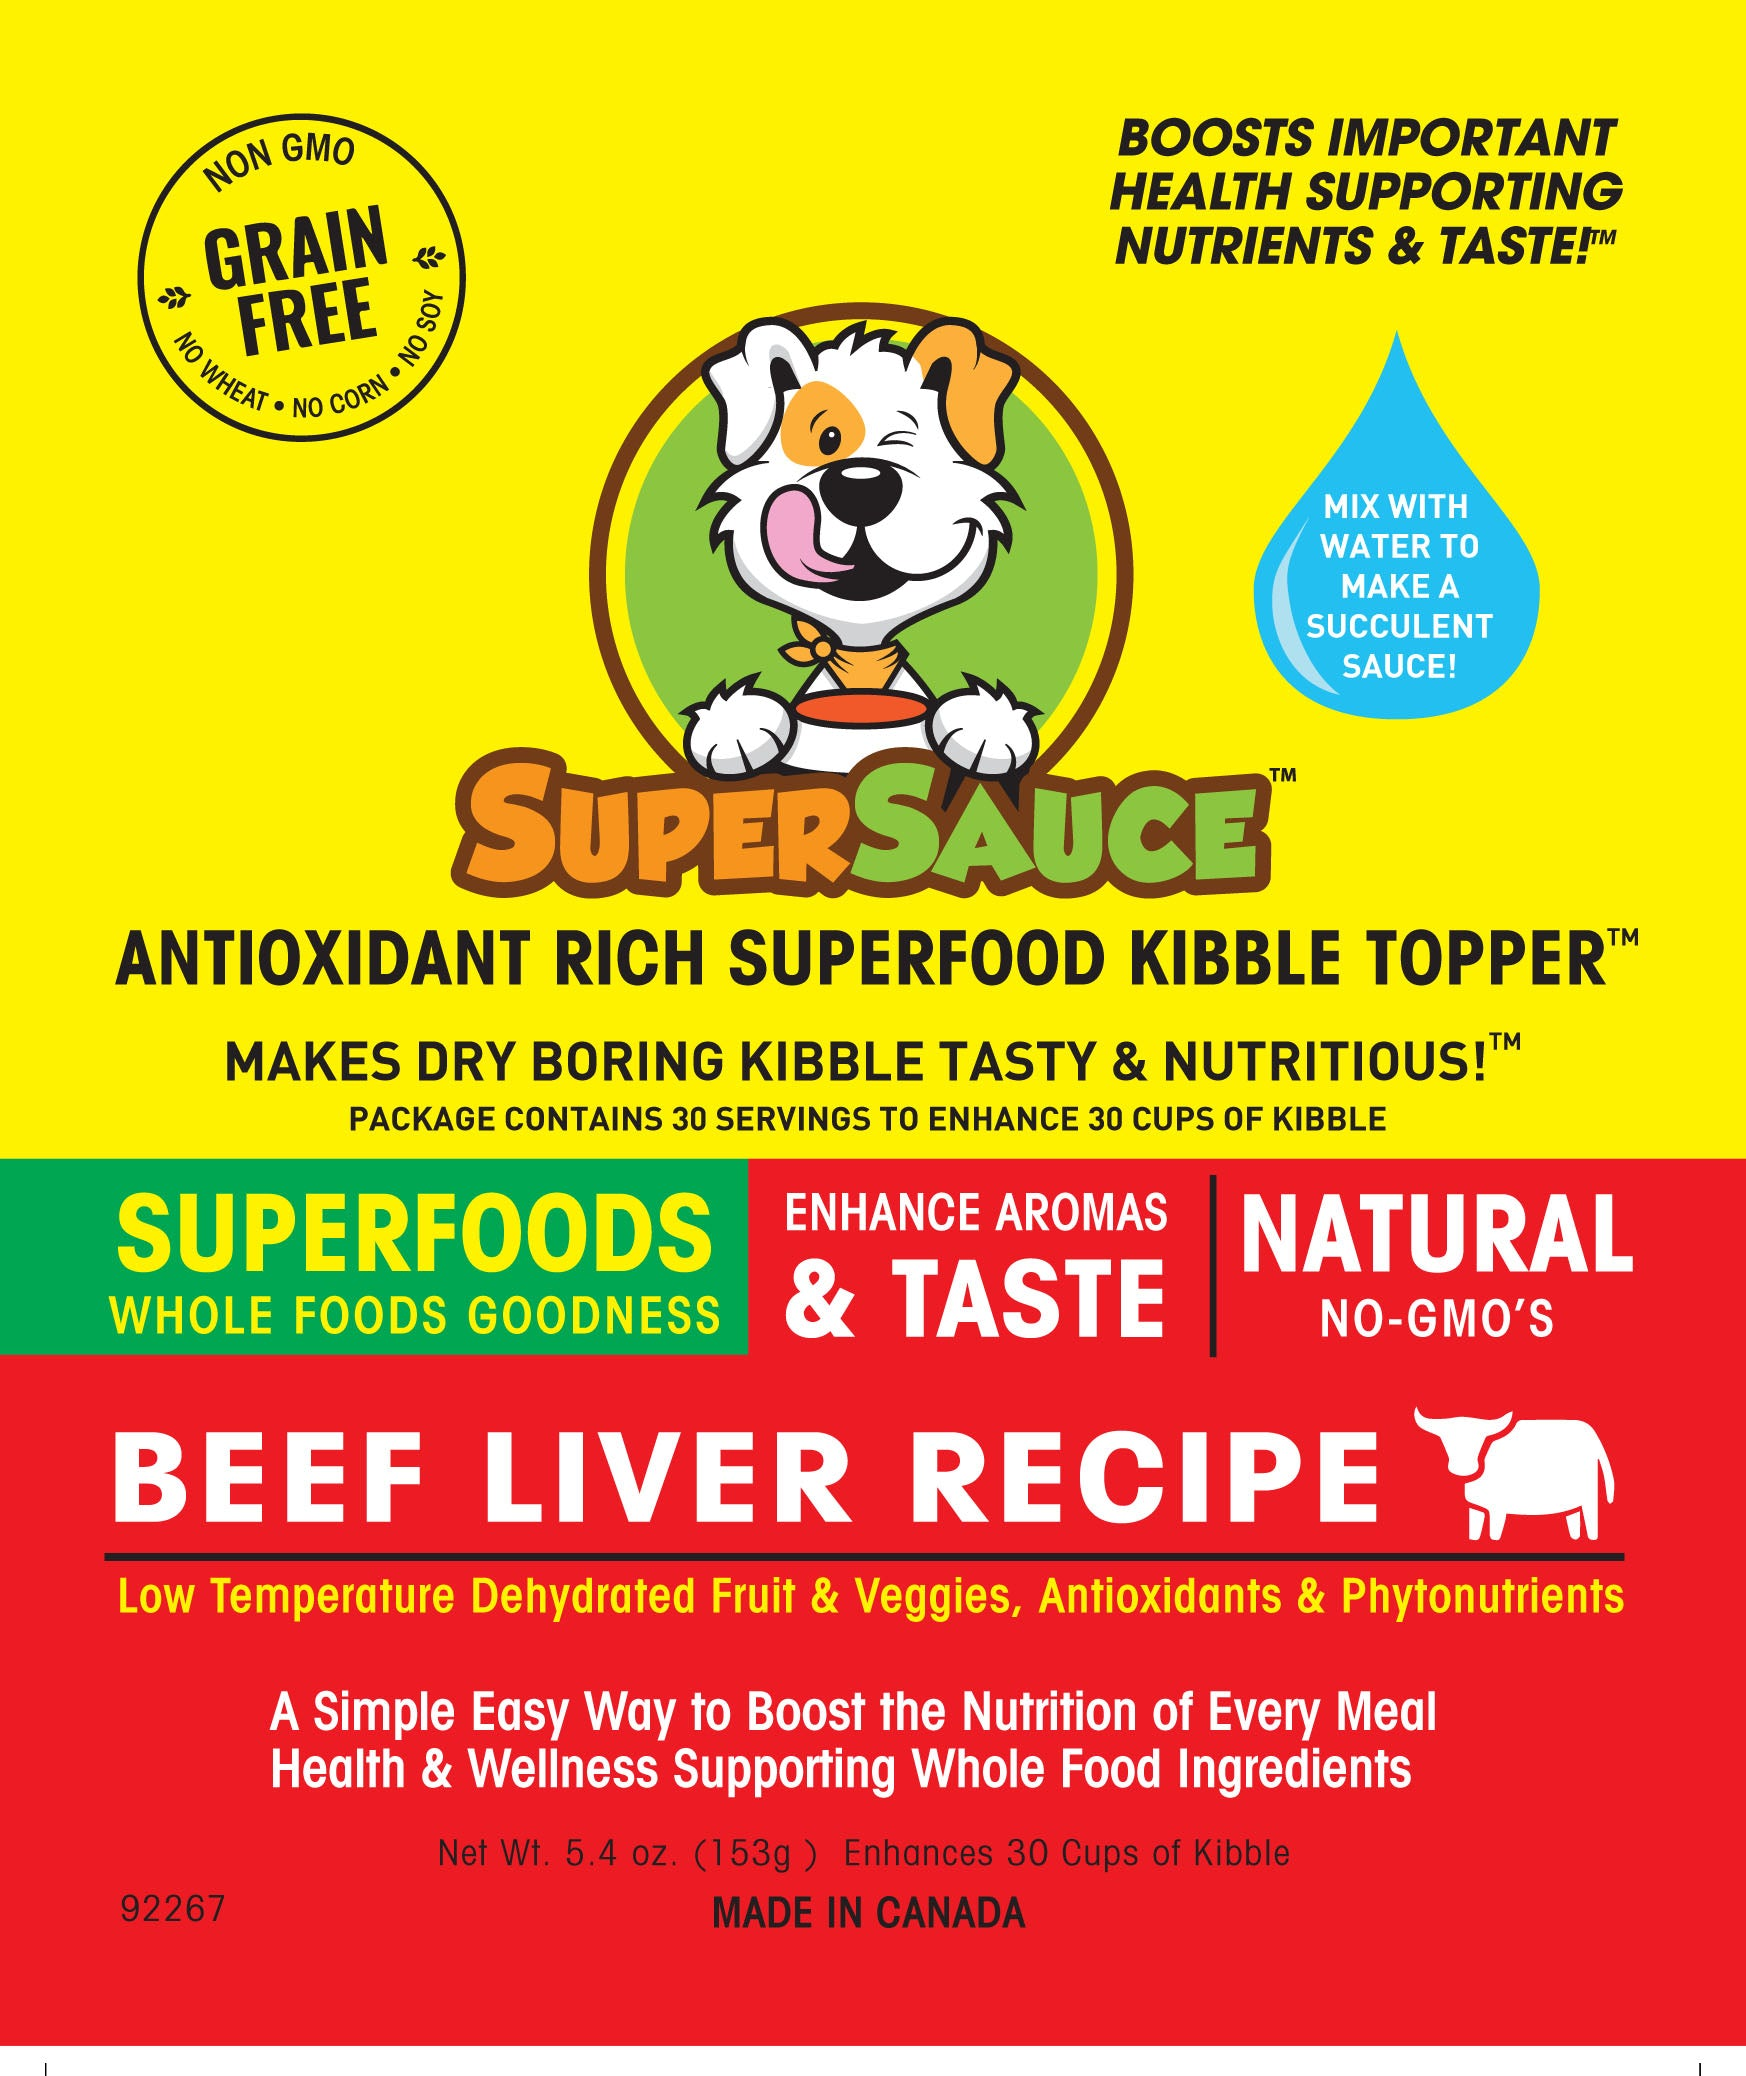 SUPERSAUCE™ Beef Liver  + SUPERFOODS 5.4 oz. (153g) MADE IN CANADA